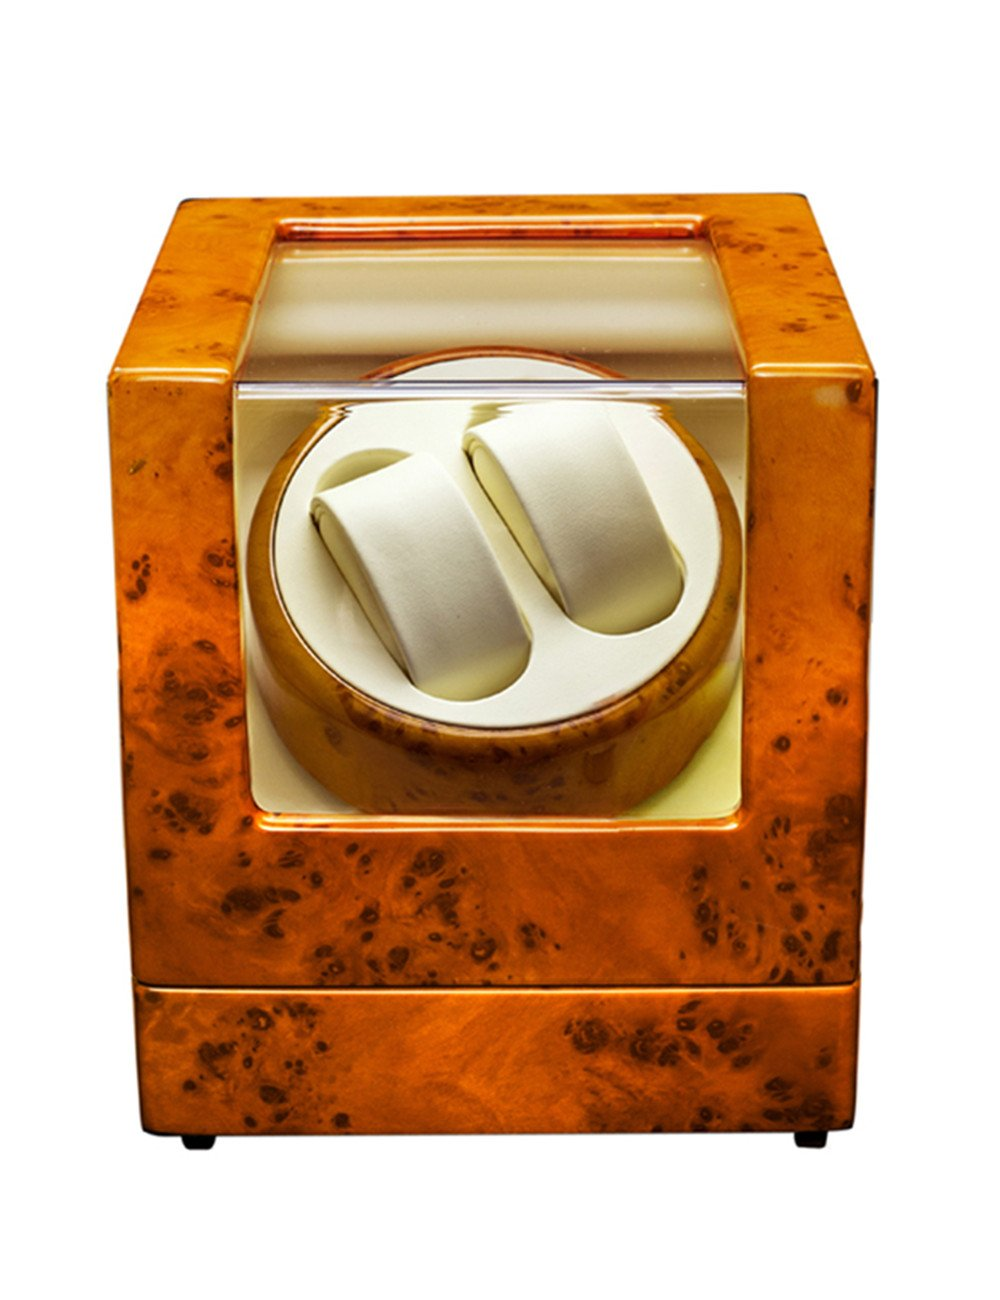 Superior Self Winding Boxes for Automatic Watches 2+0 Quiet Rotary Watch Winder in Orange Sheet Material